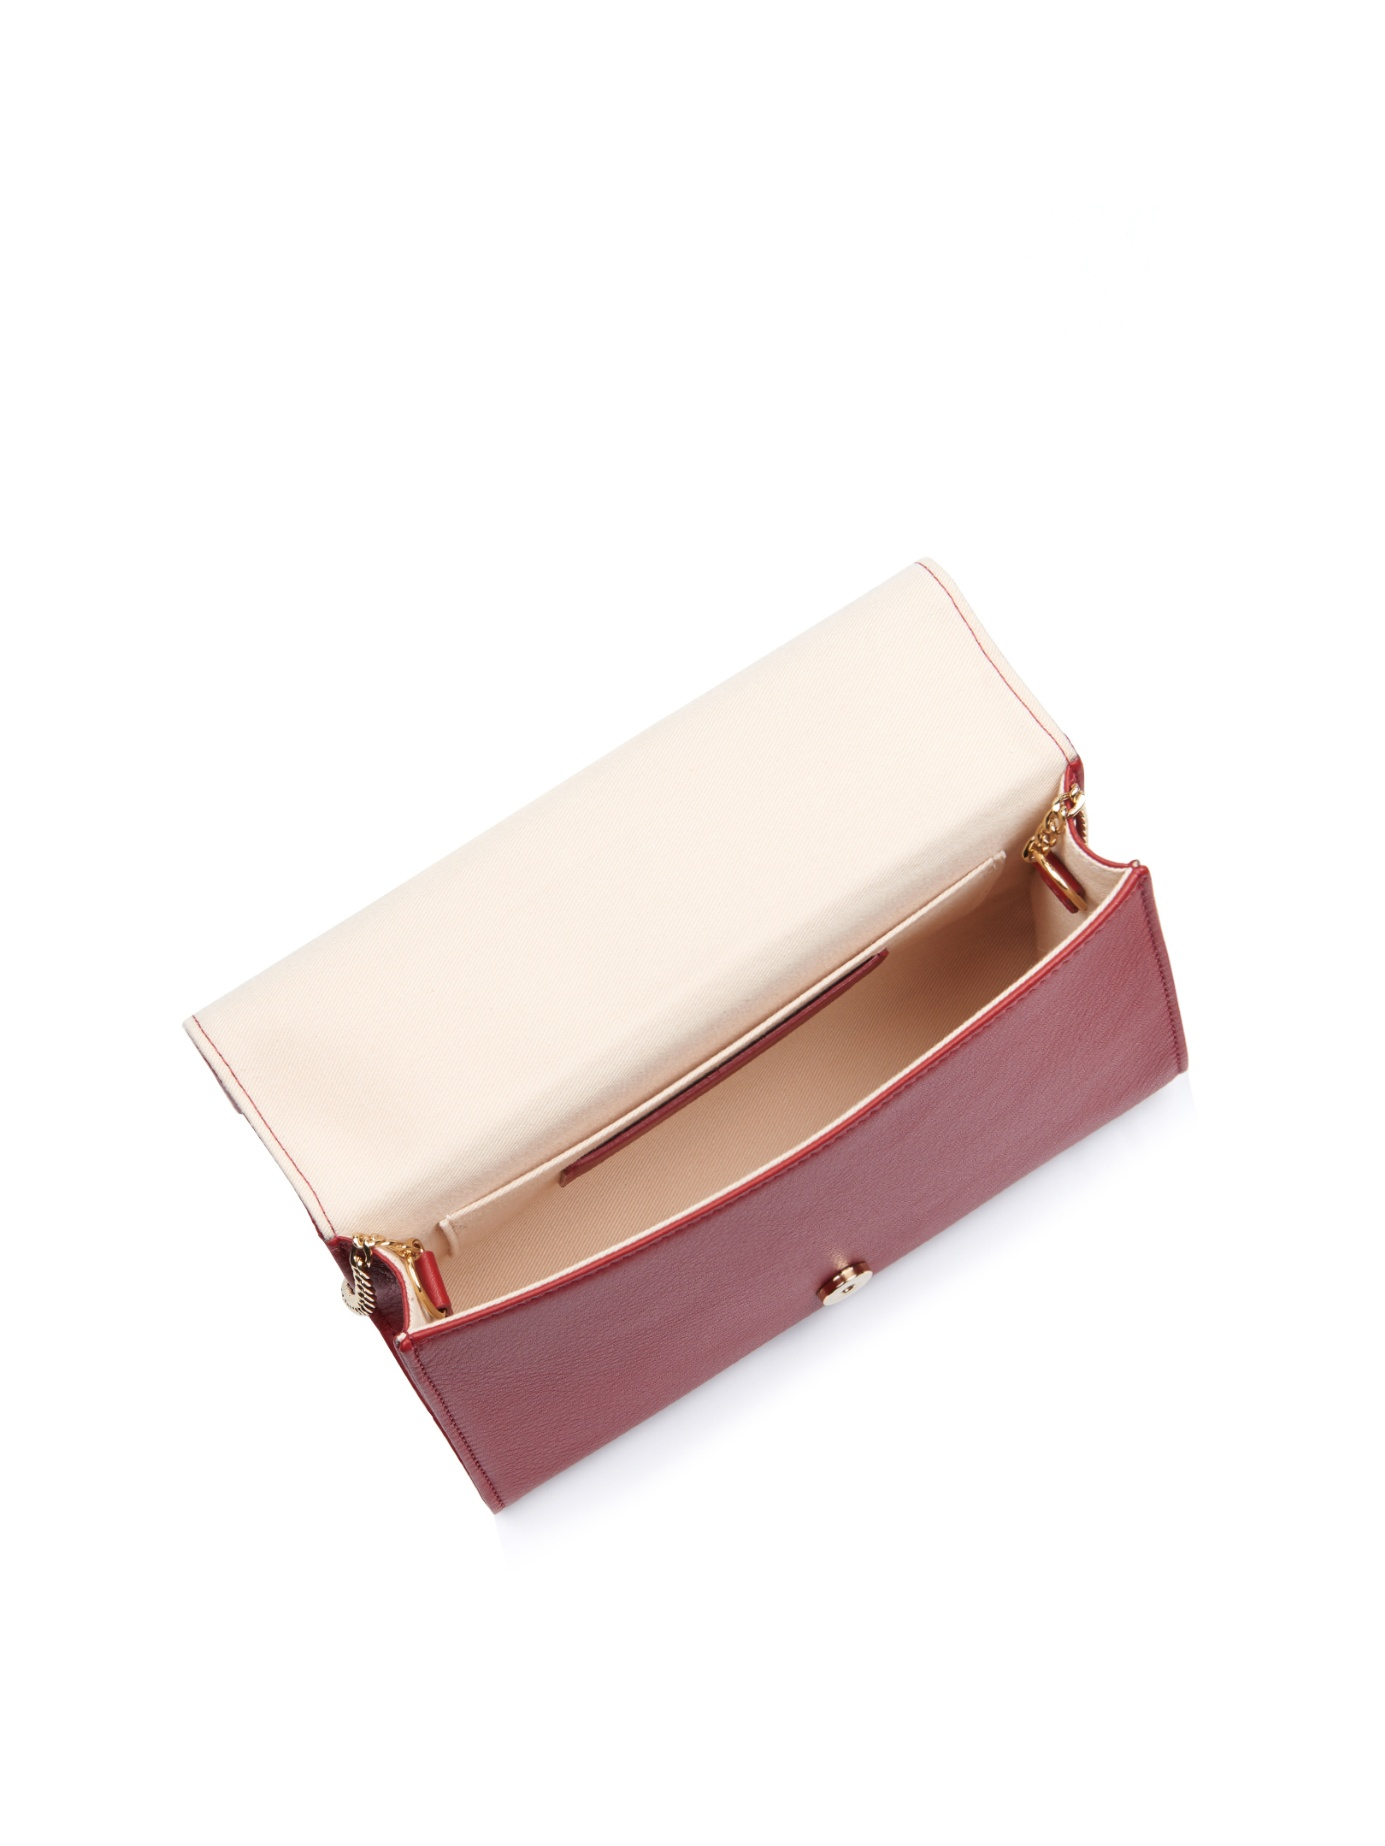 chloe metallic leather clutch